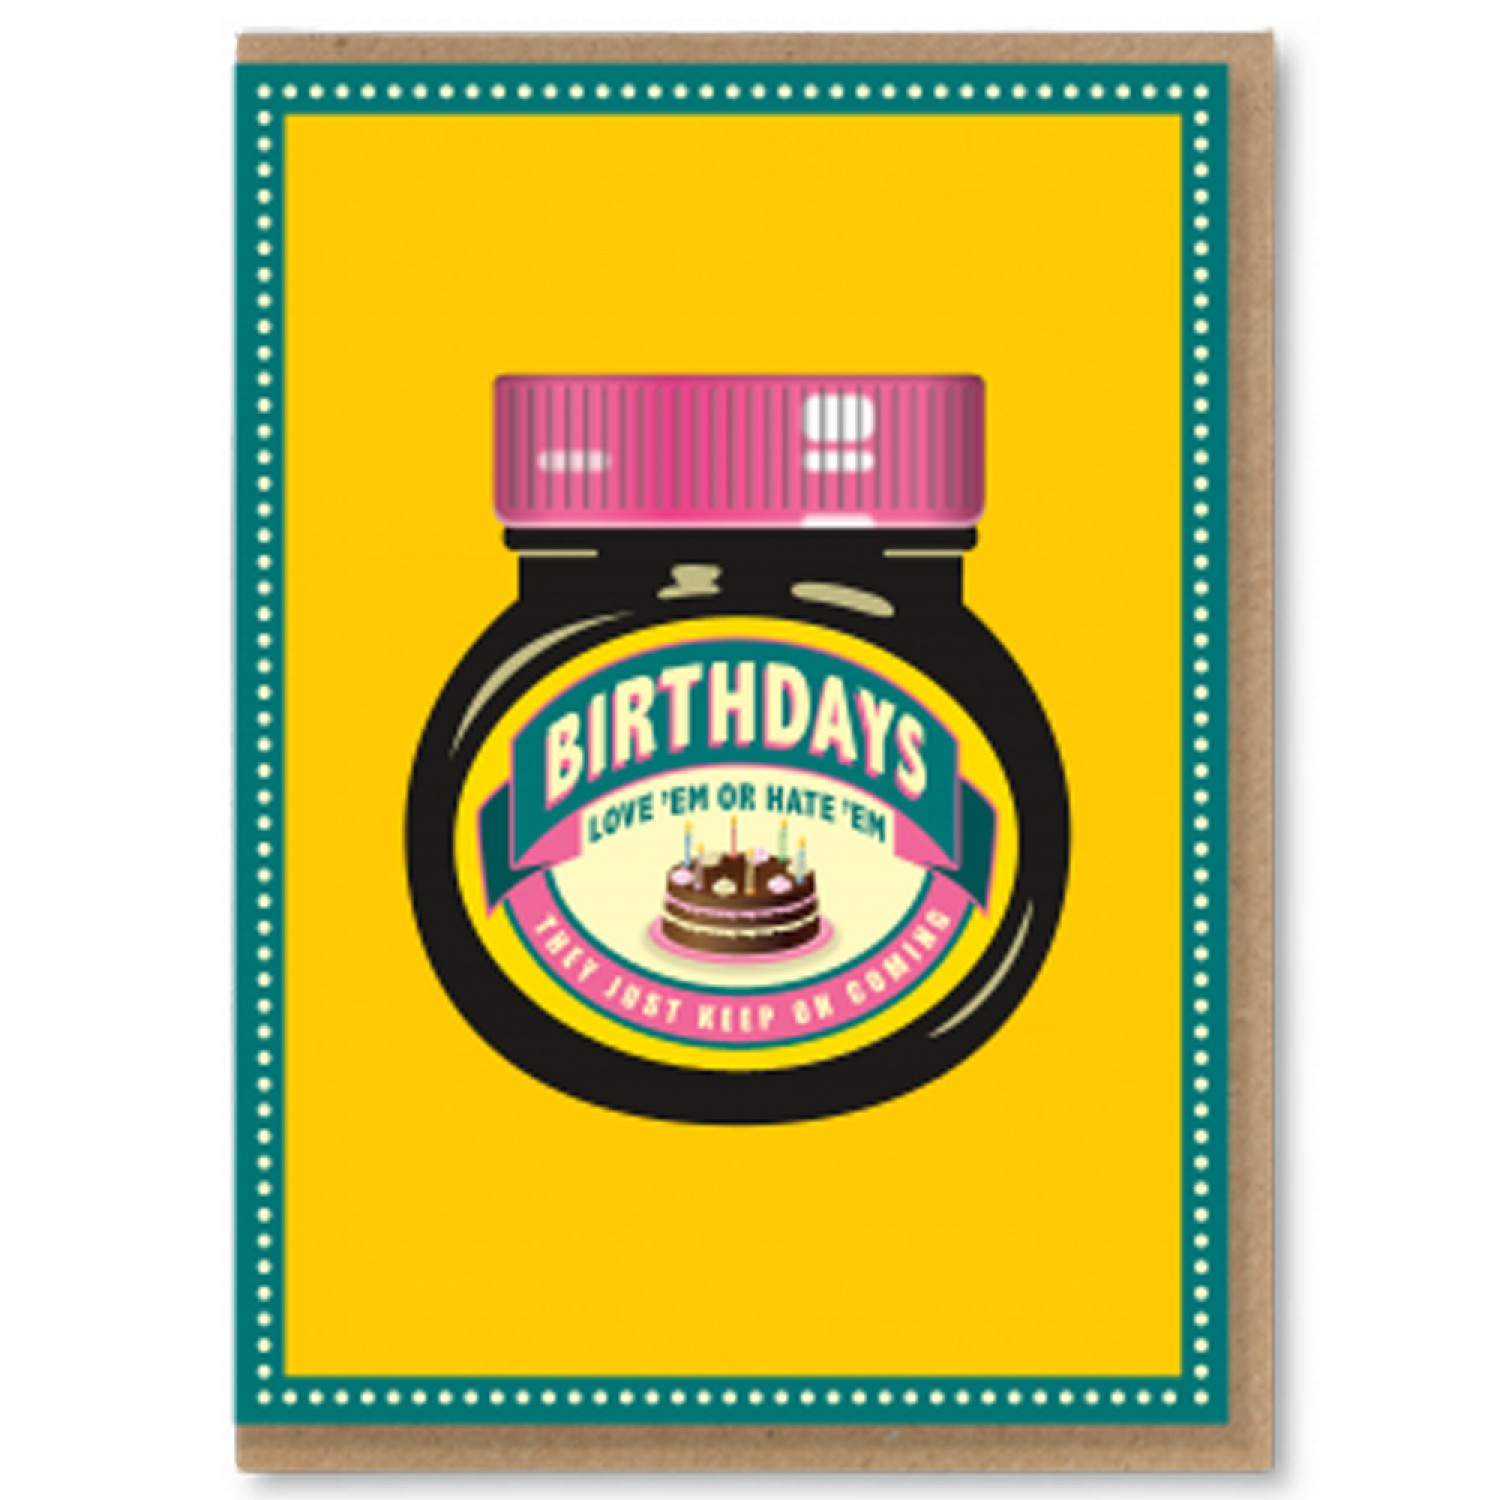 marmite birthday card ; marmite